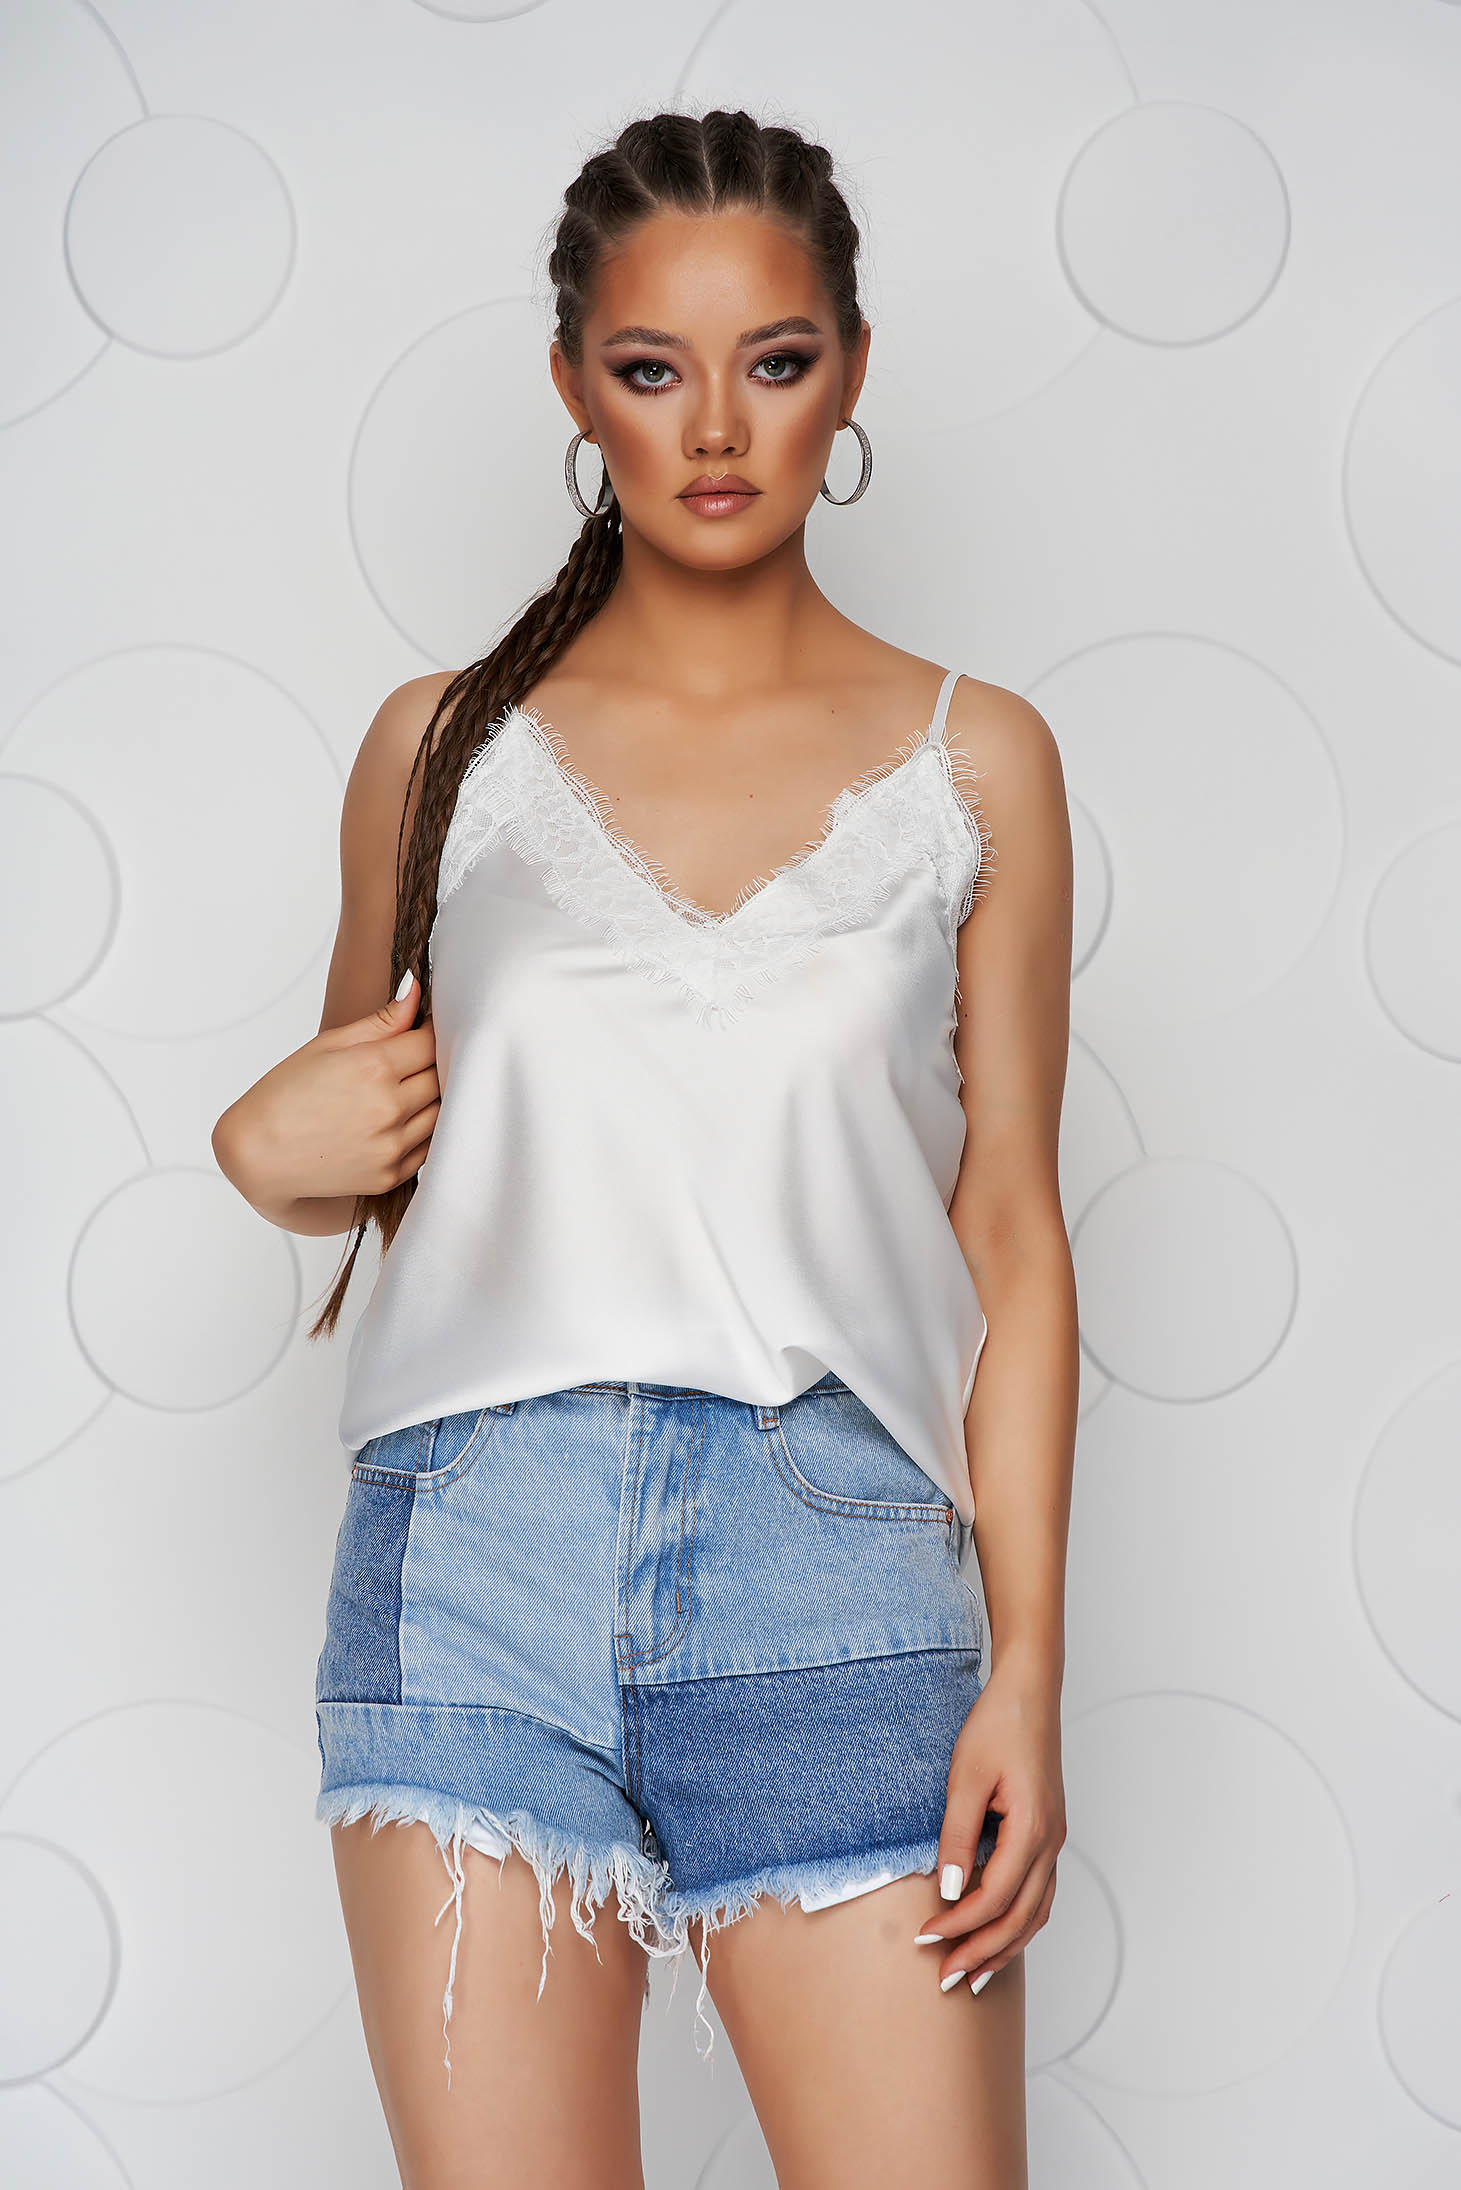 White top shirt loose fit from satin with straps with lace details